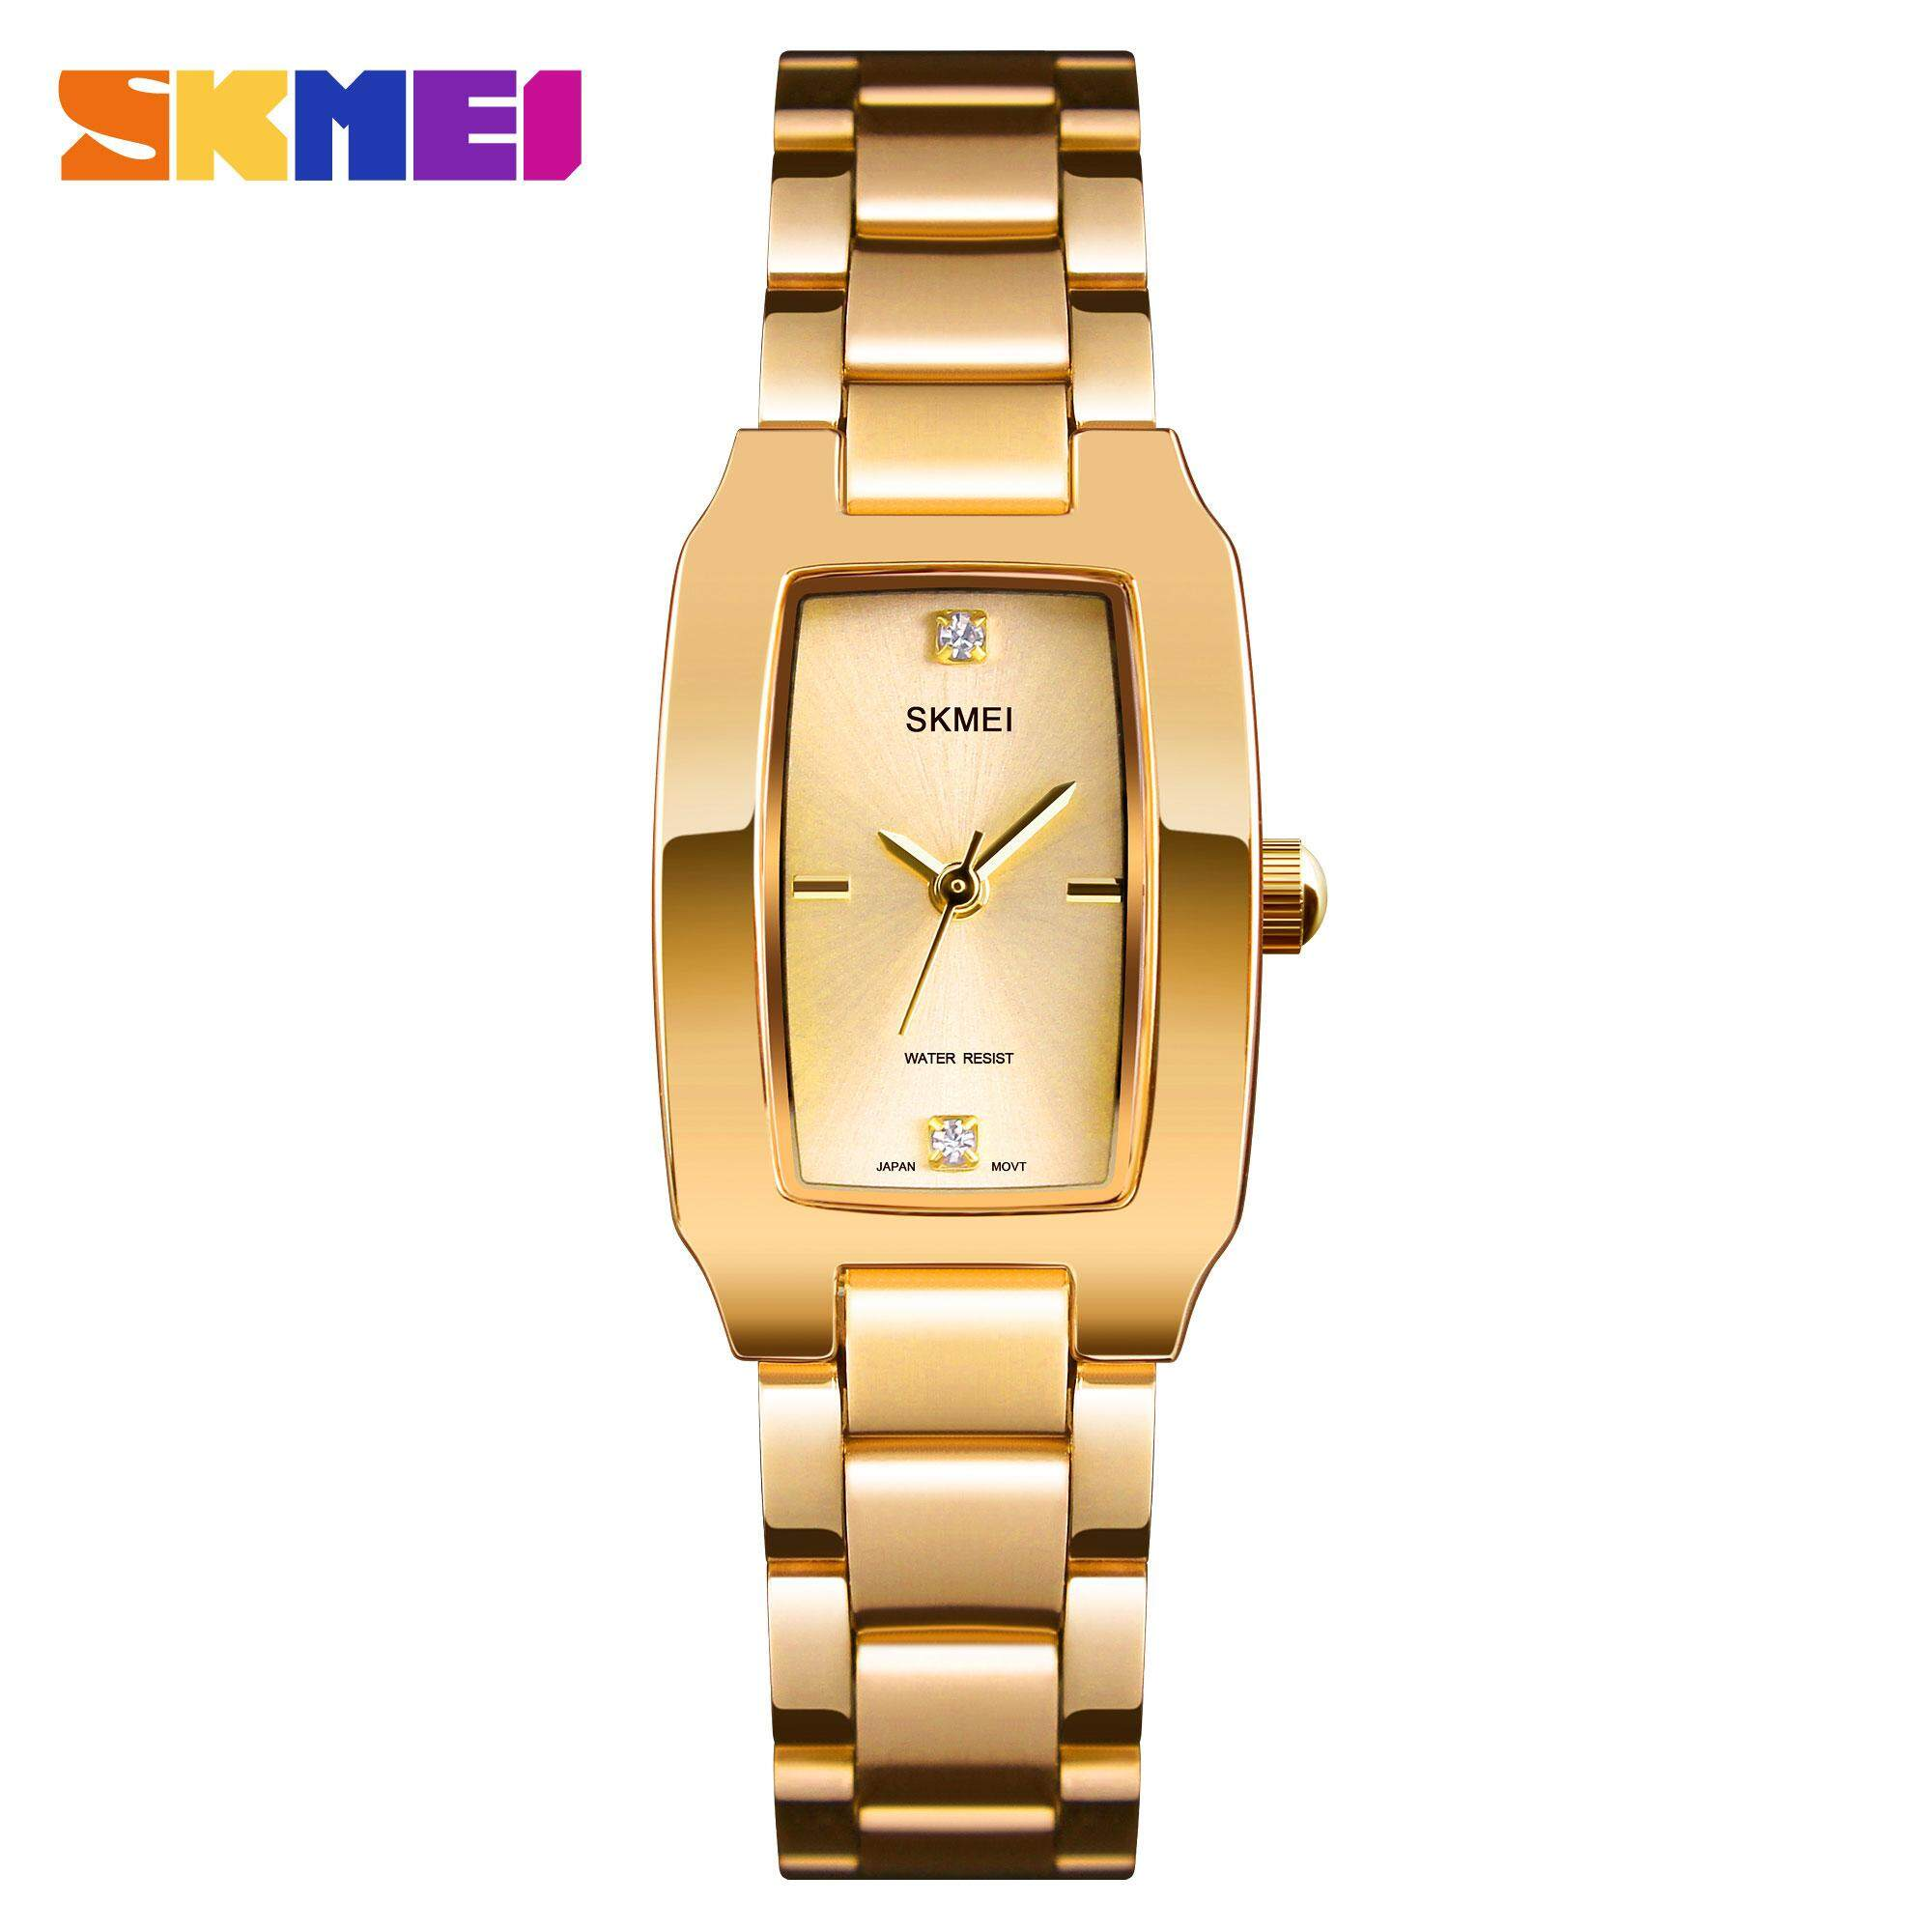 SKMEI New Women Fashion Watches Quartz Waterproof Watch Stainless Steel Simple Elegant Wristwatches Ladies Clock 1400